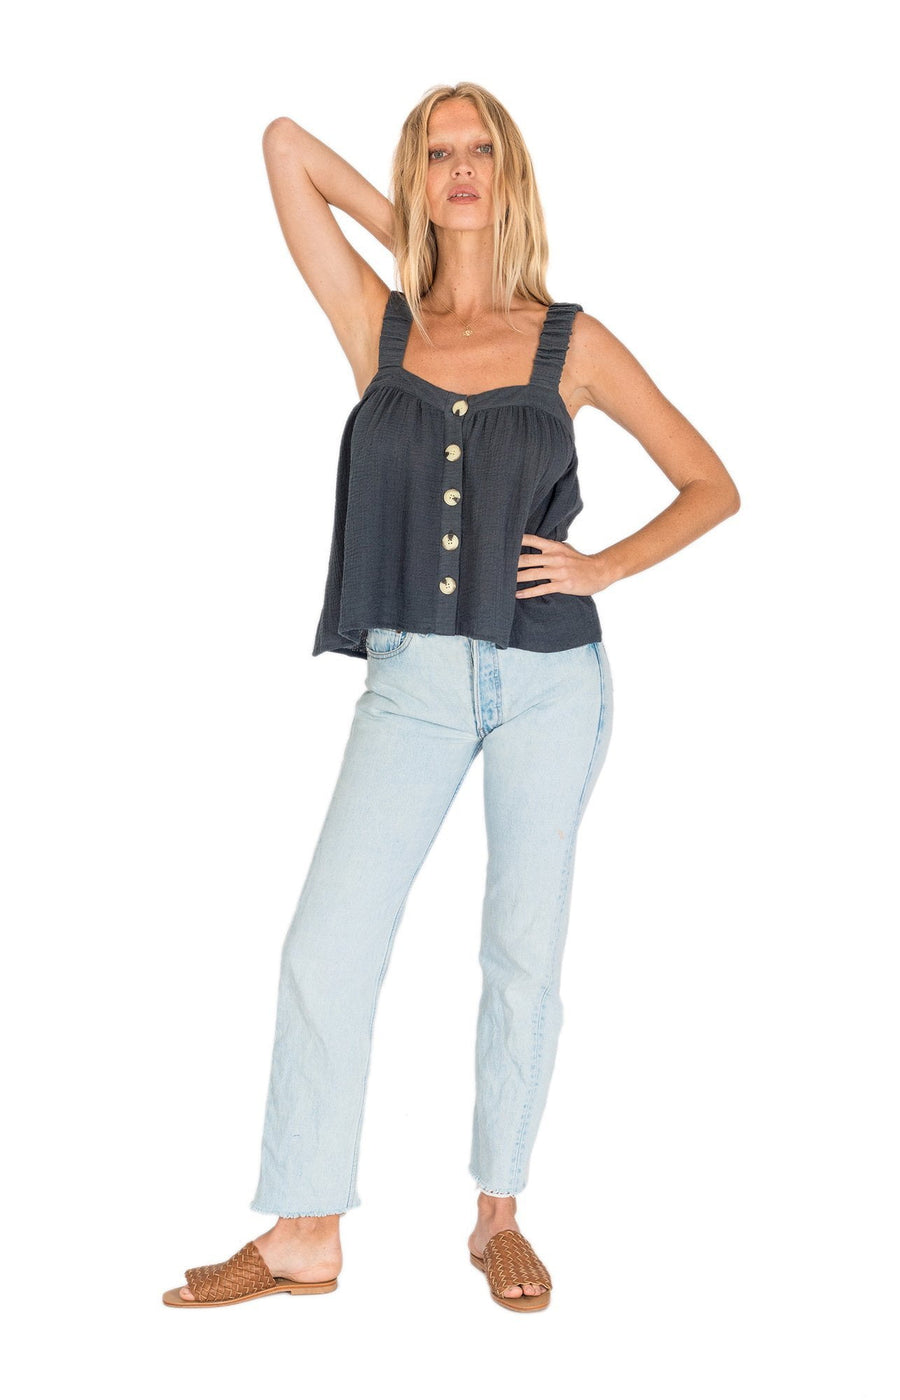 7810cefd5d4aa The Bare Road Poppy Top Charcoal ...